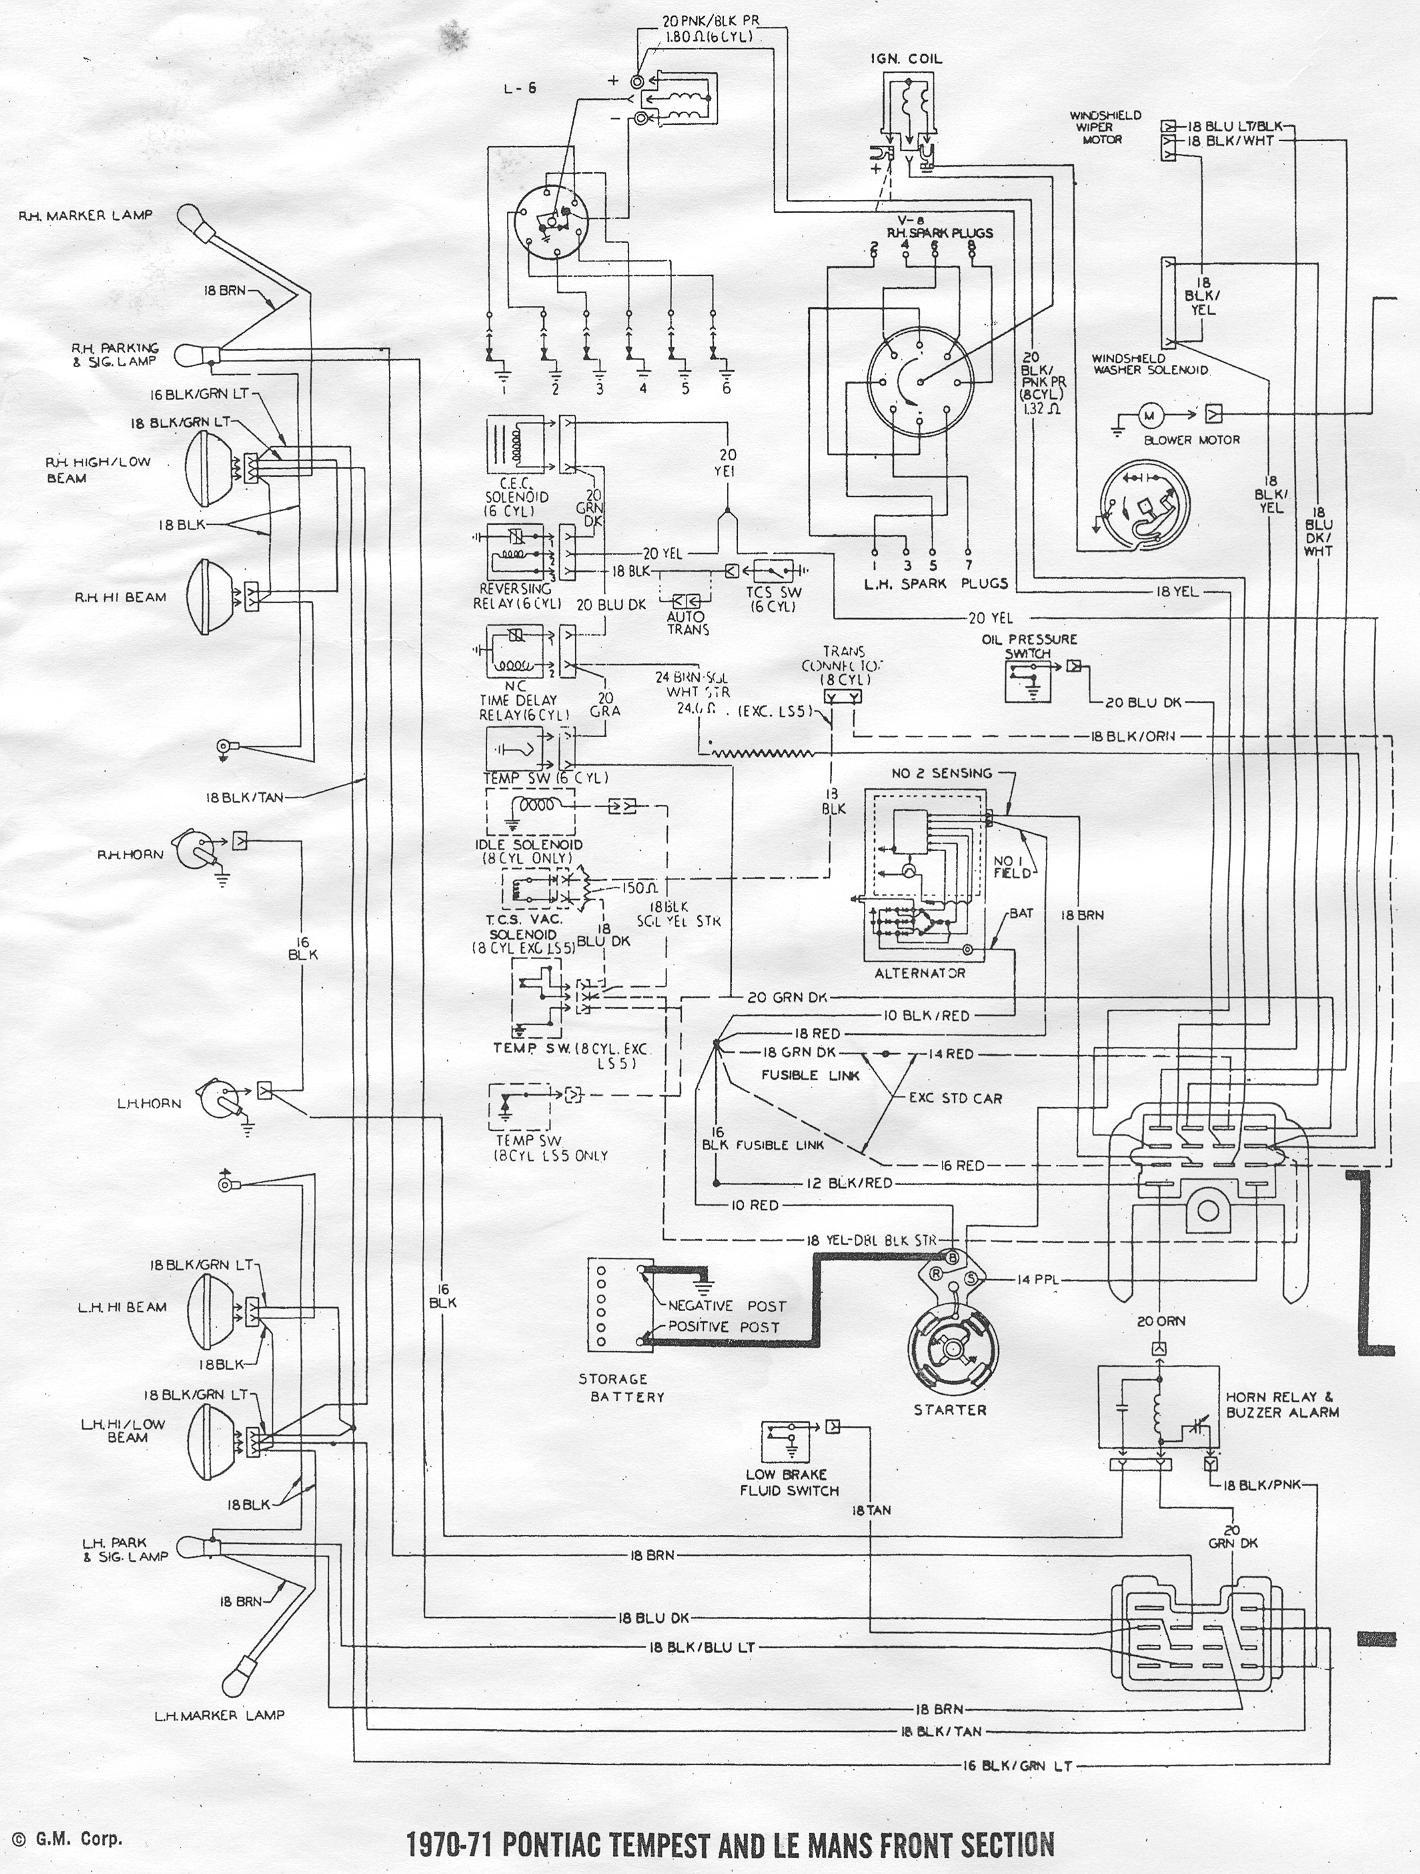 1972 chevelle horn relay wiring diagram 1972 wiring diagrams 1968 chevelle horn relay diagram jodebal com